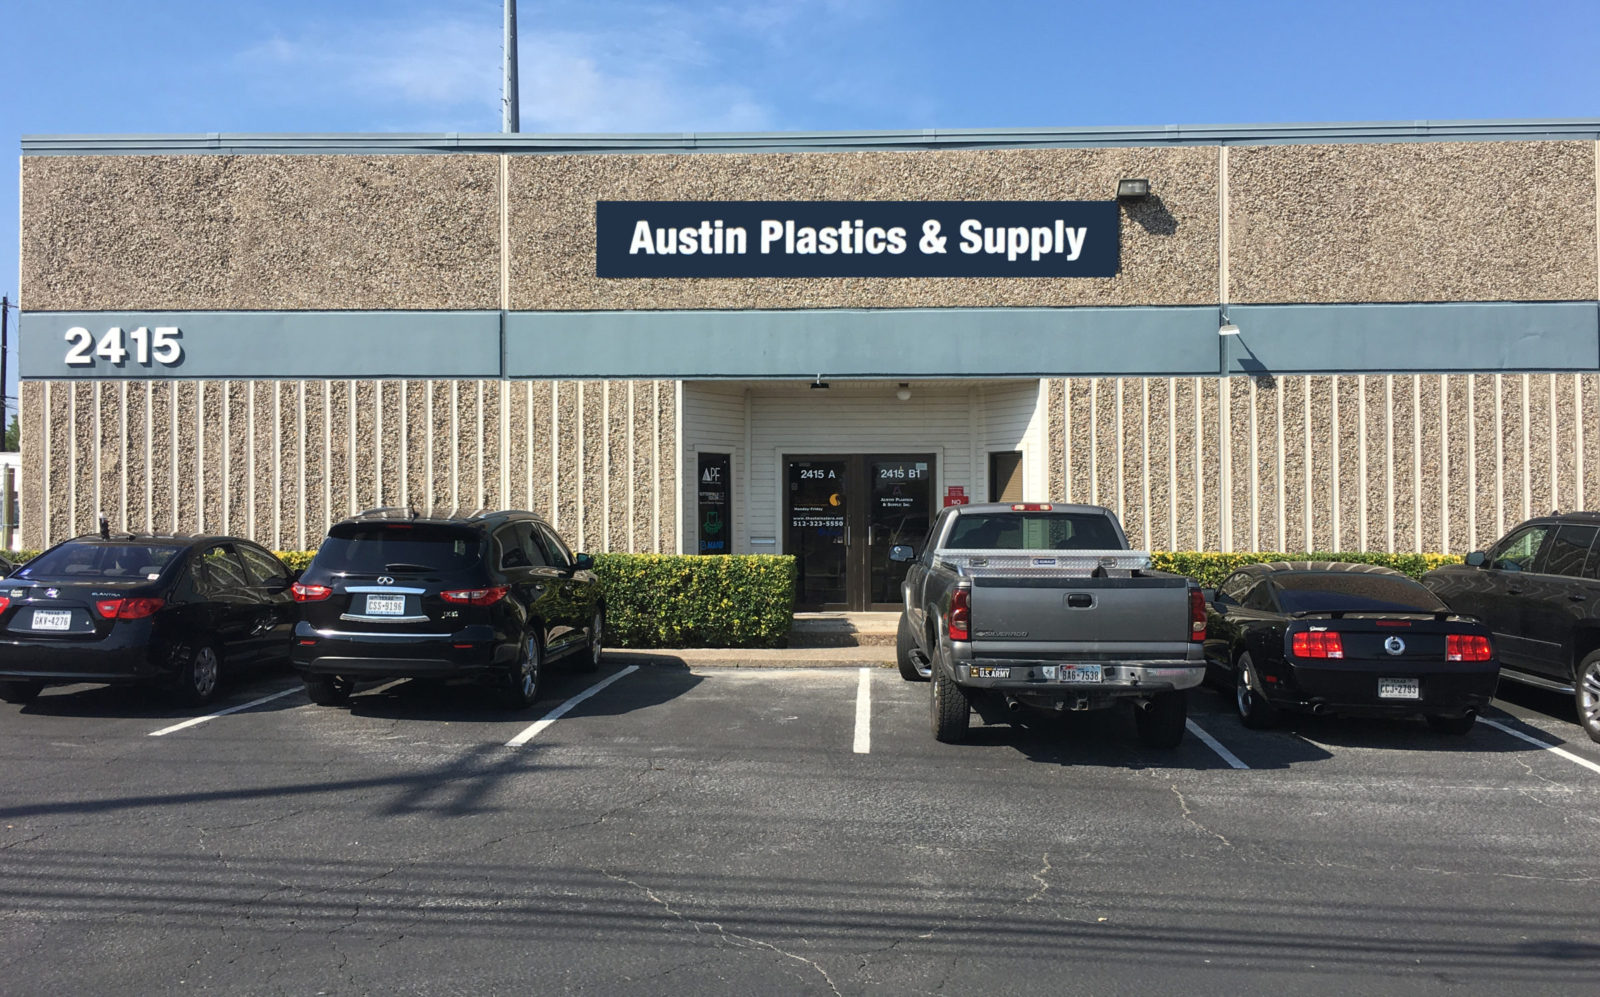 Our Location: 2415 Kramer Ln Ste. B, Austin, TX 78758